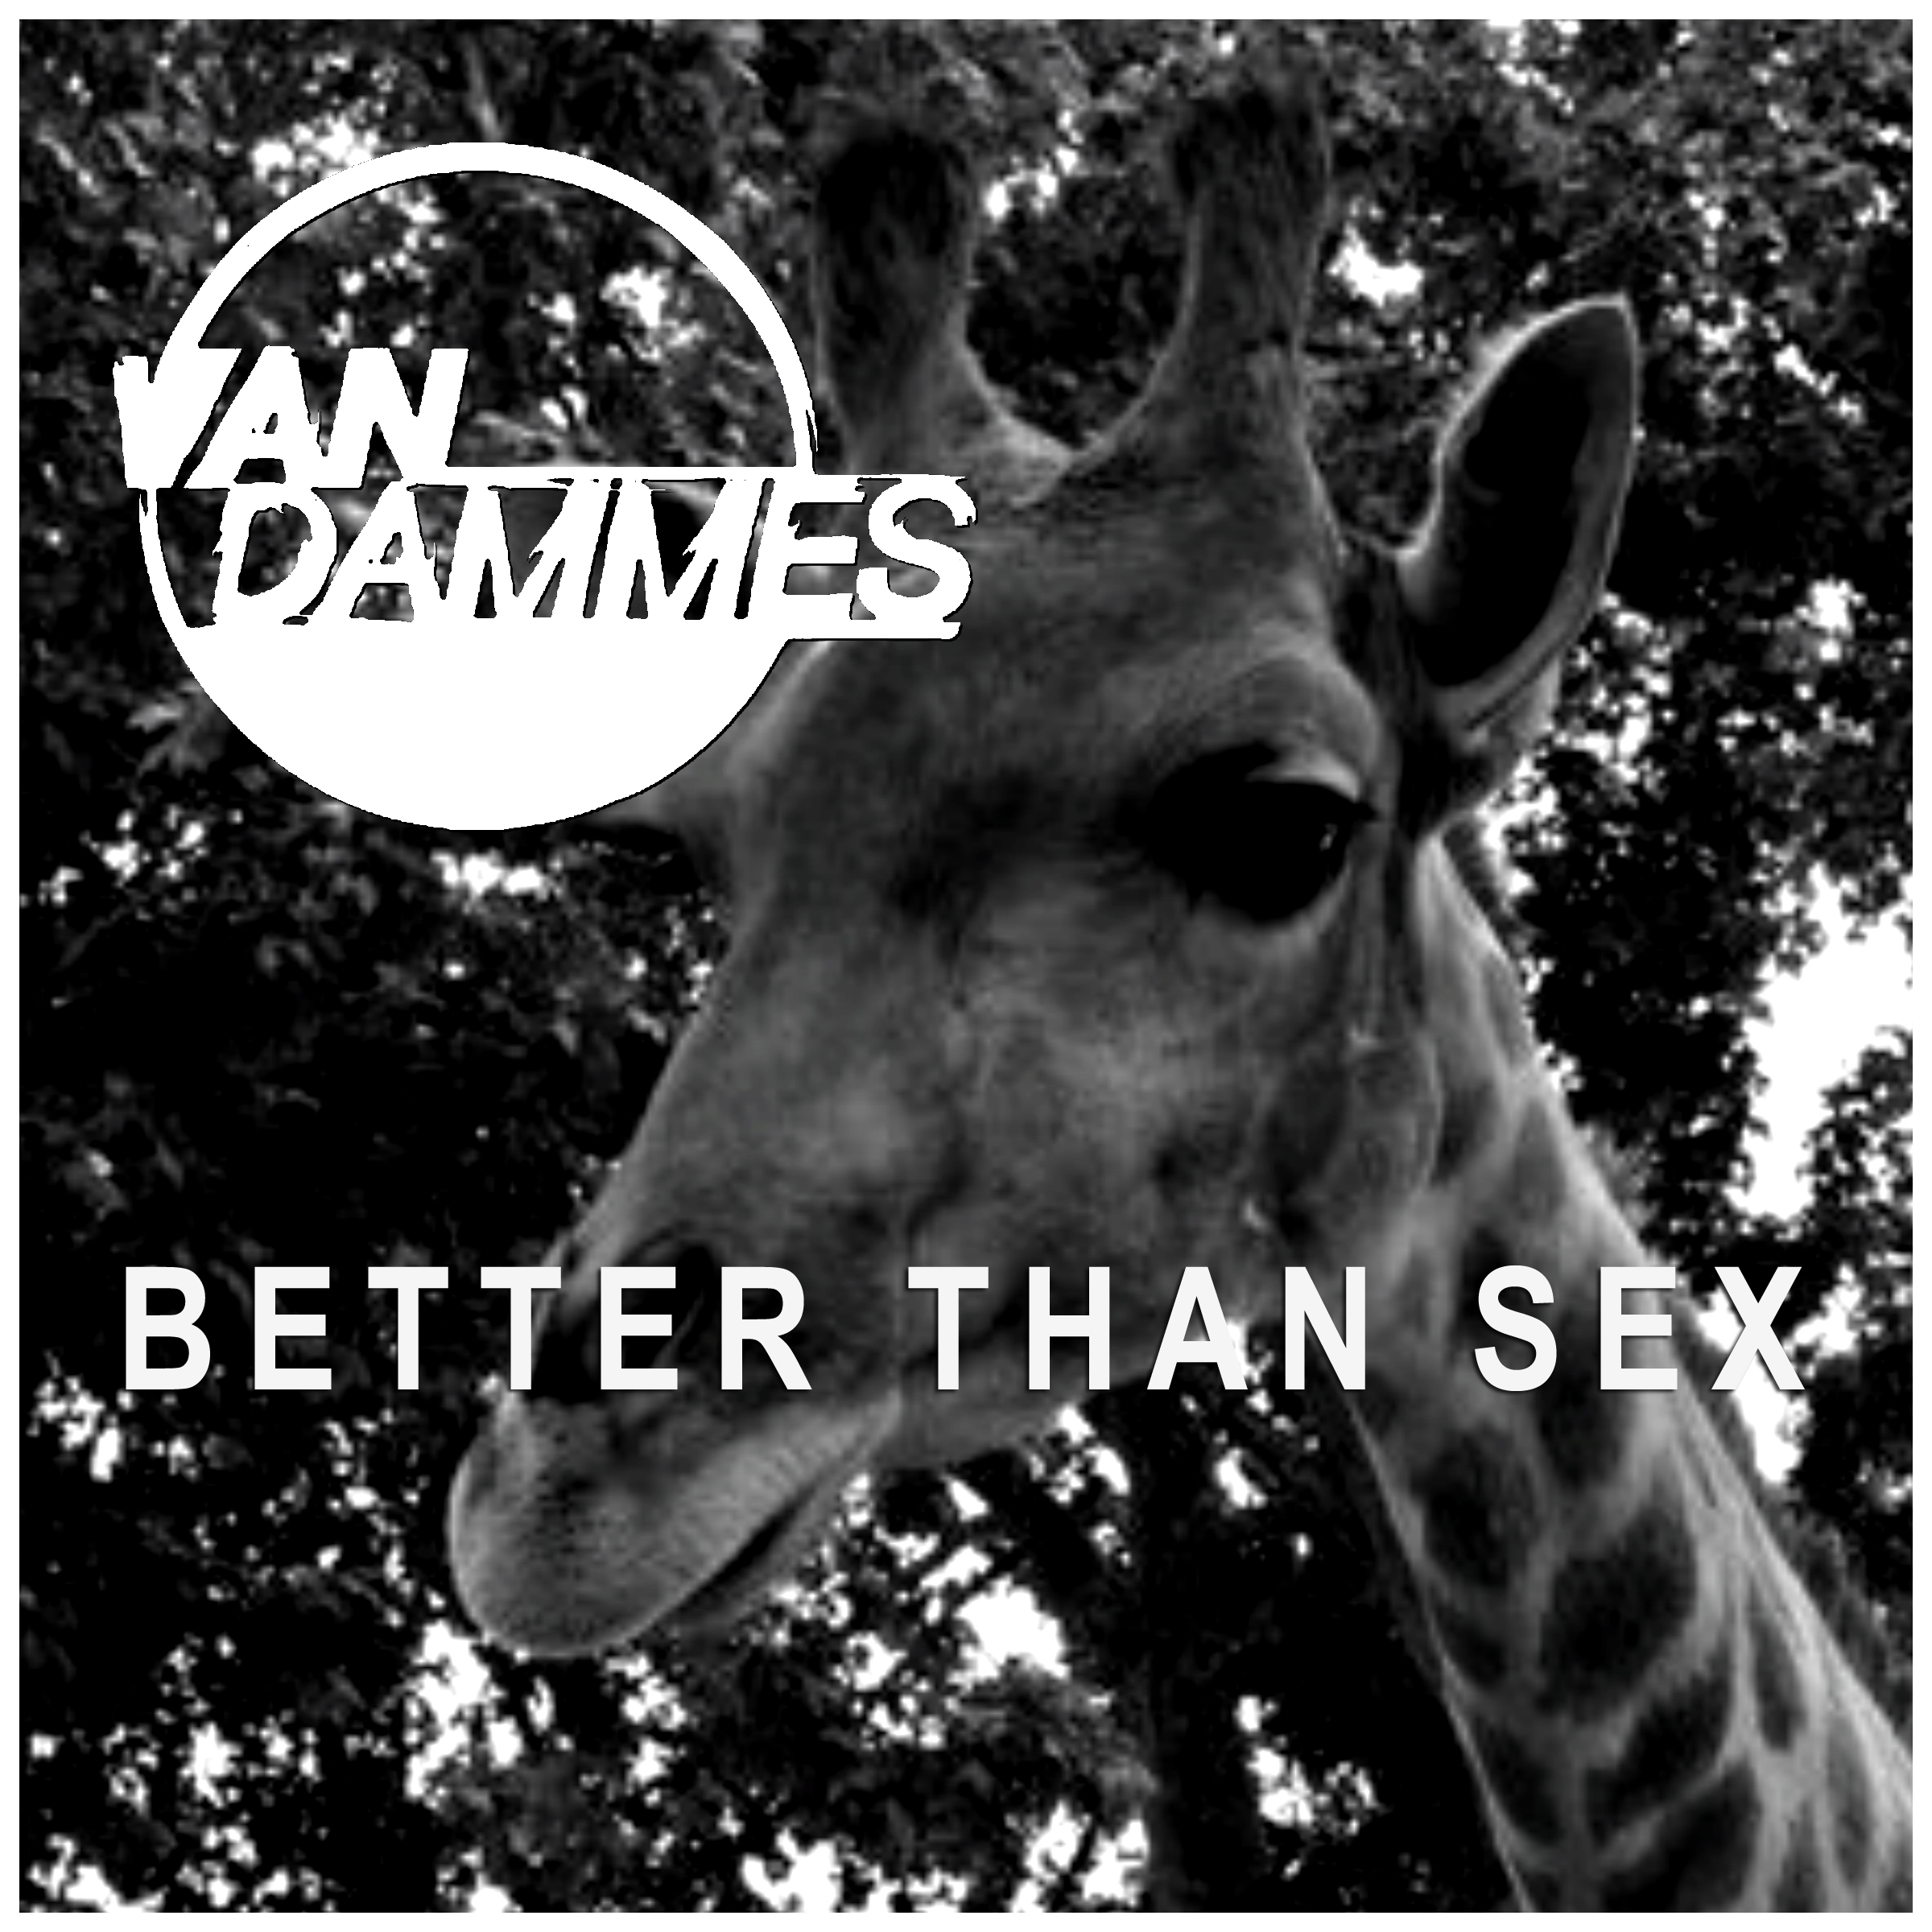 Van Dammes Better Than Sex Cover copy